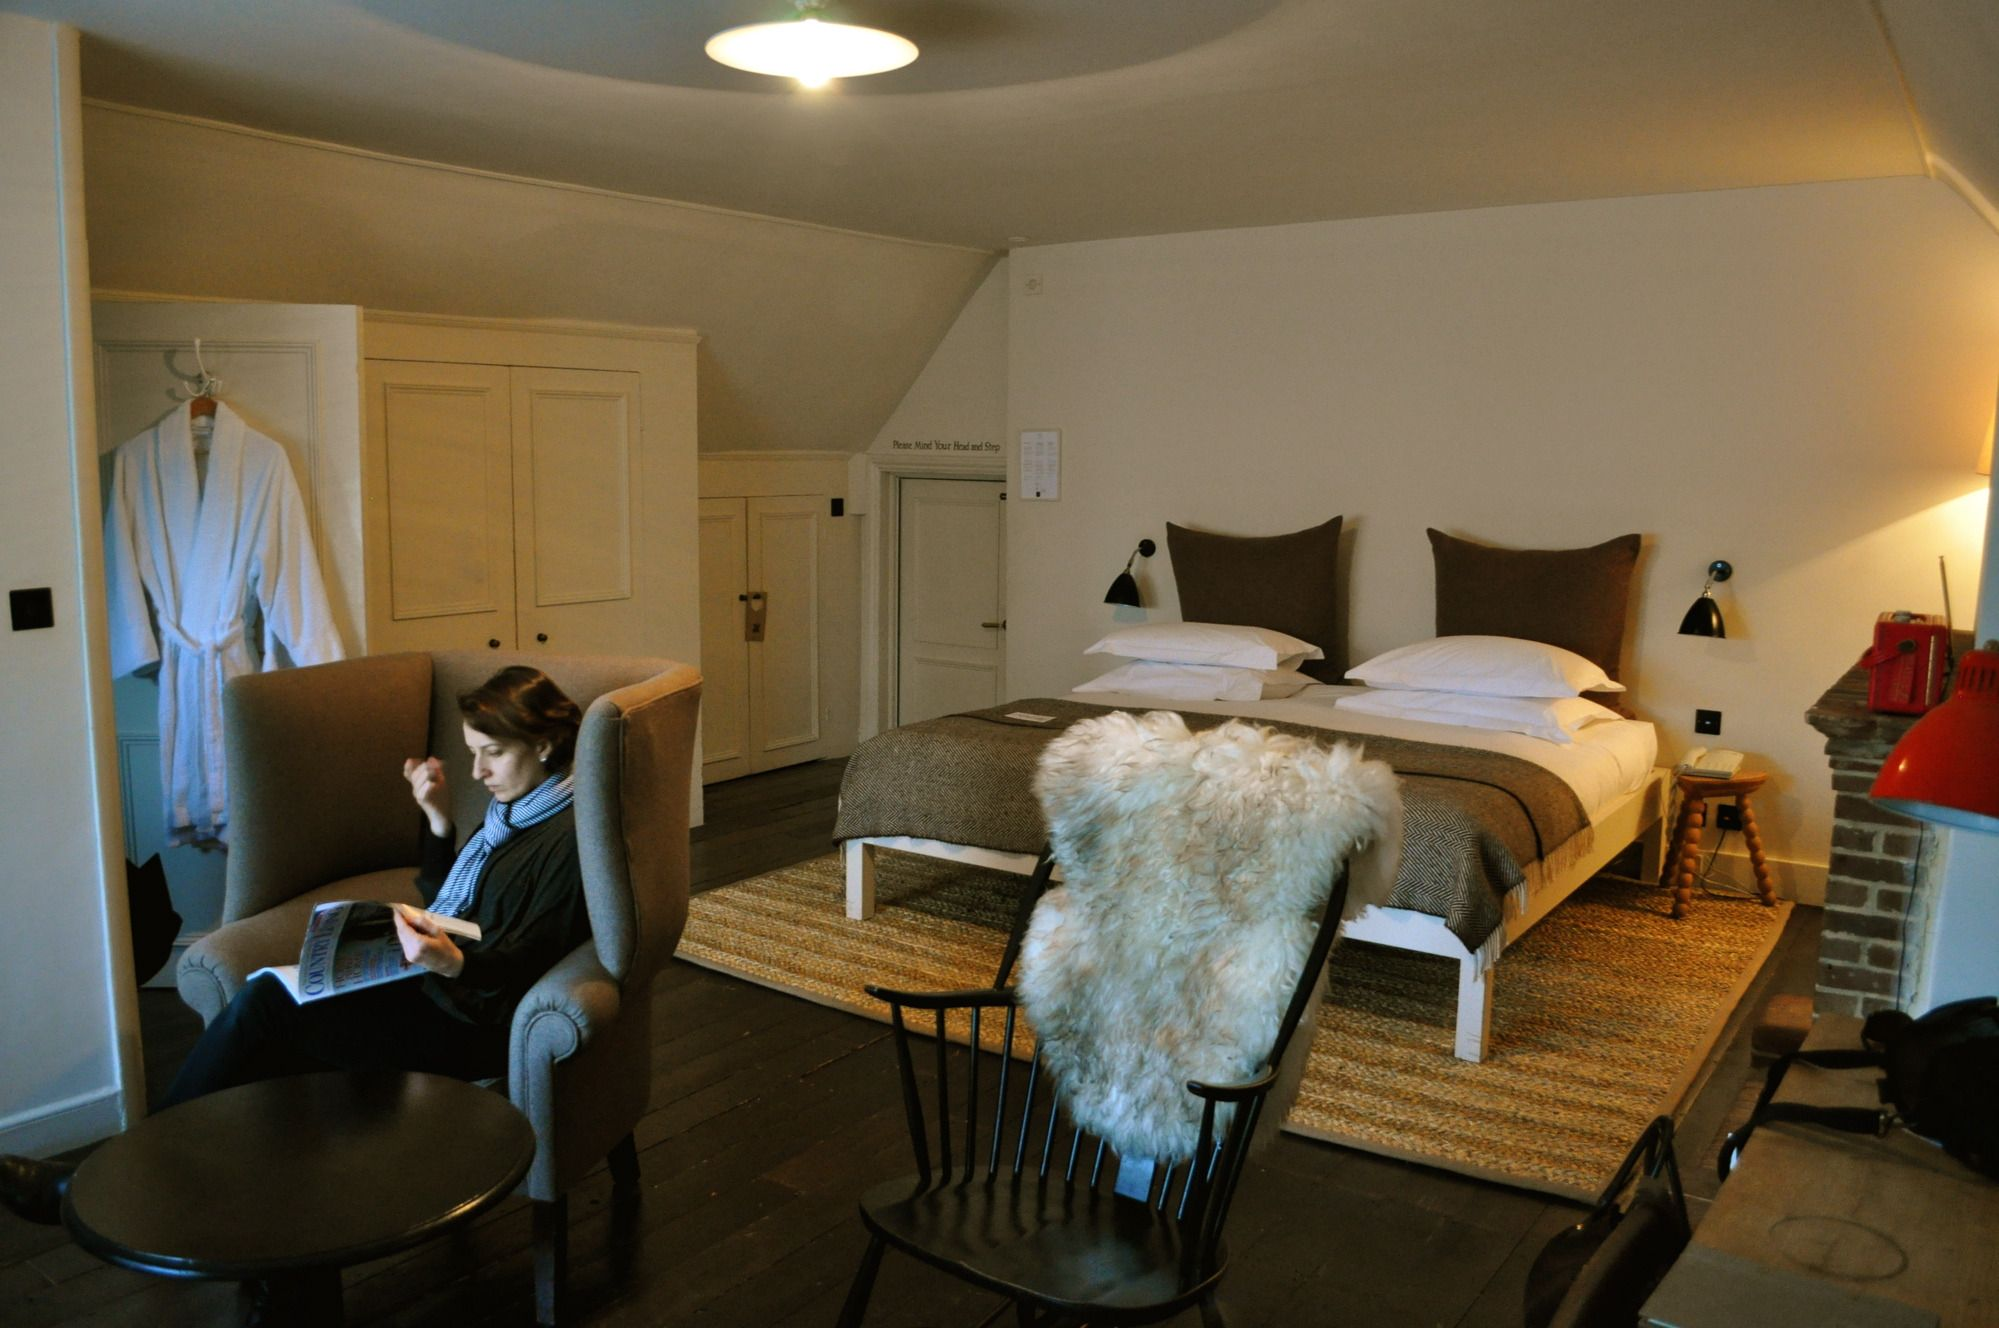 Hotels in Maidenhead holidays at Cool Places